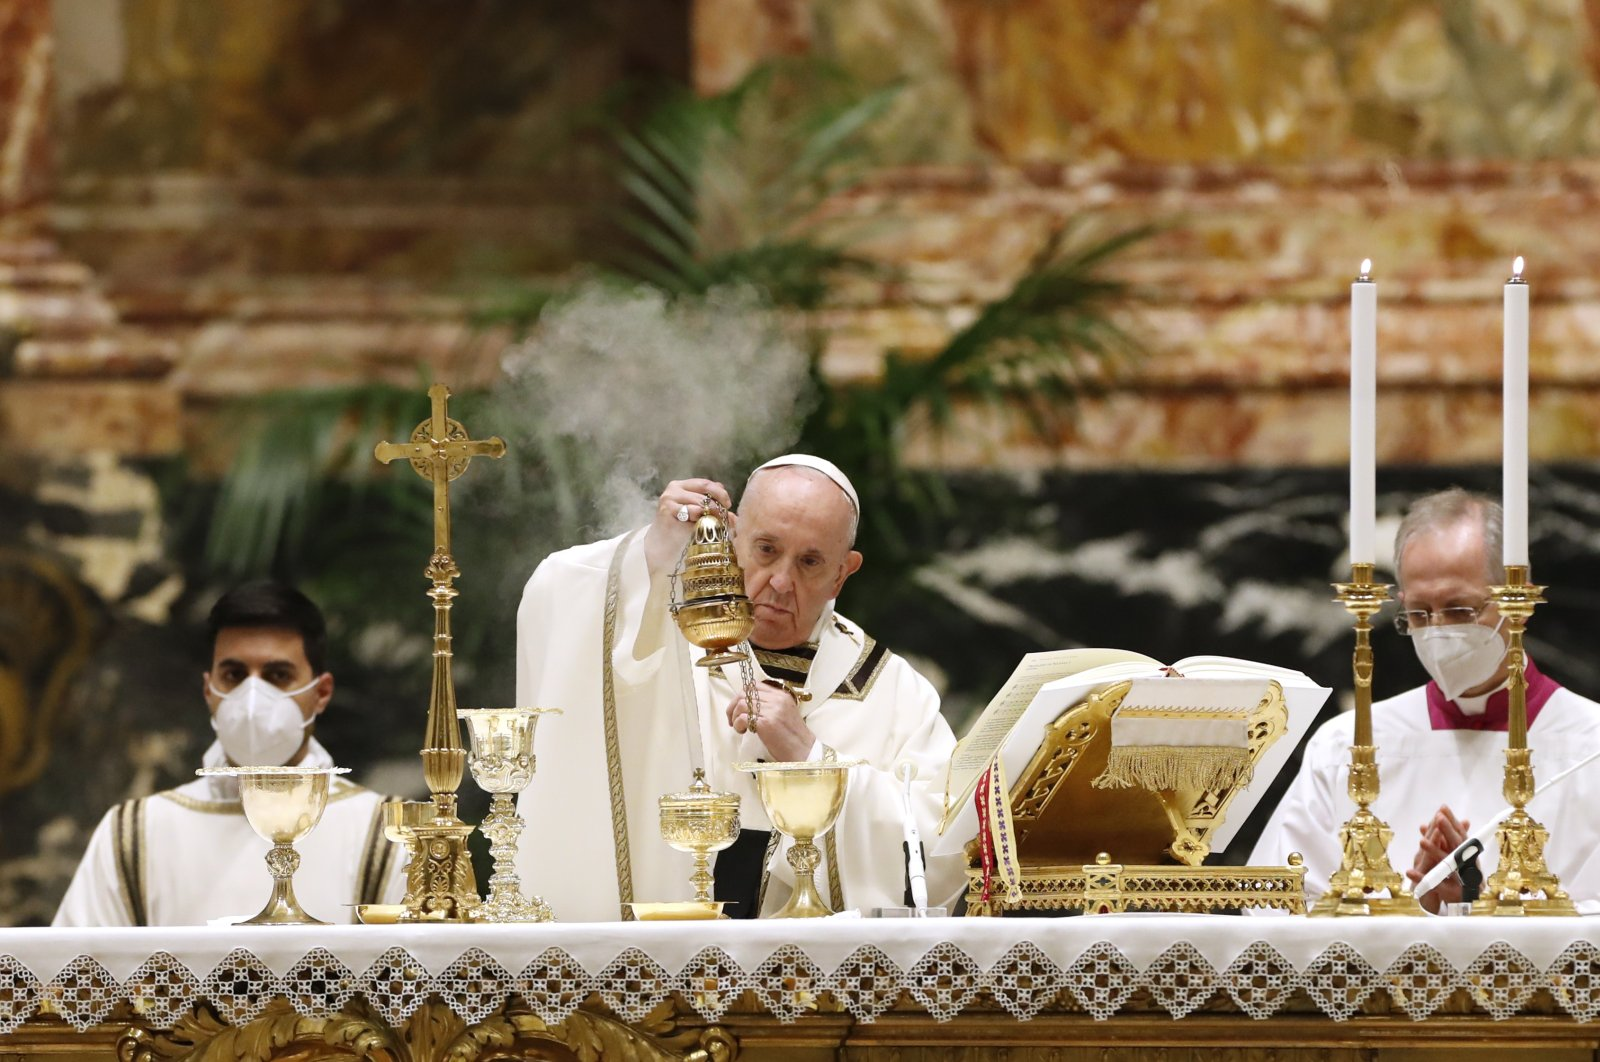 Pope Francis celebrates the Easter Vigil in a nearly empty St. Peter's Basilica as coronavirus pandemic restrictions stay in place for a second year running, the Vatican, Saturday, April 3, 2021. (AP Photo)